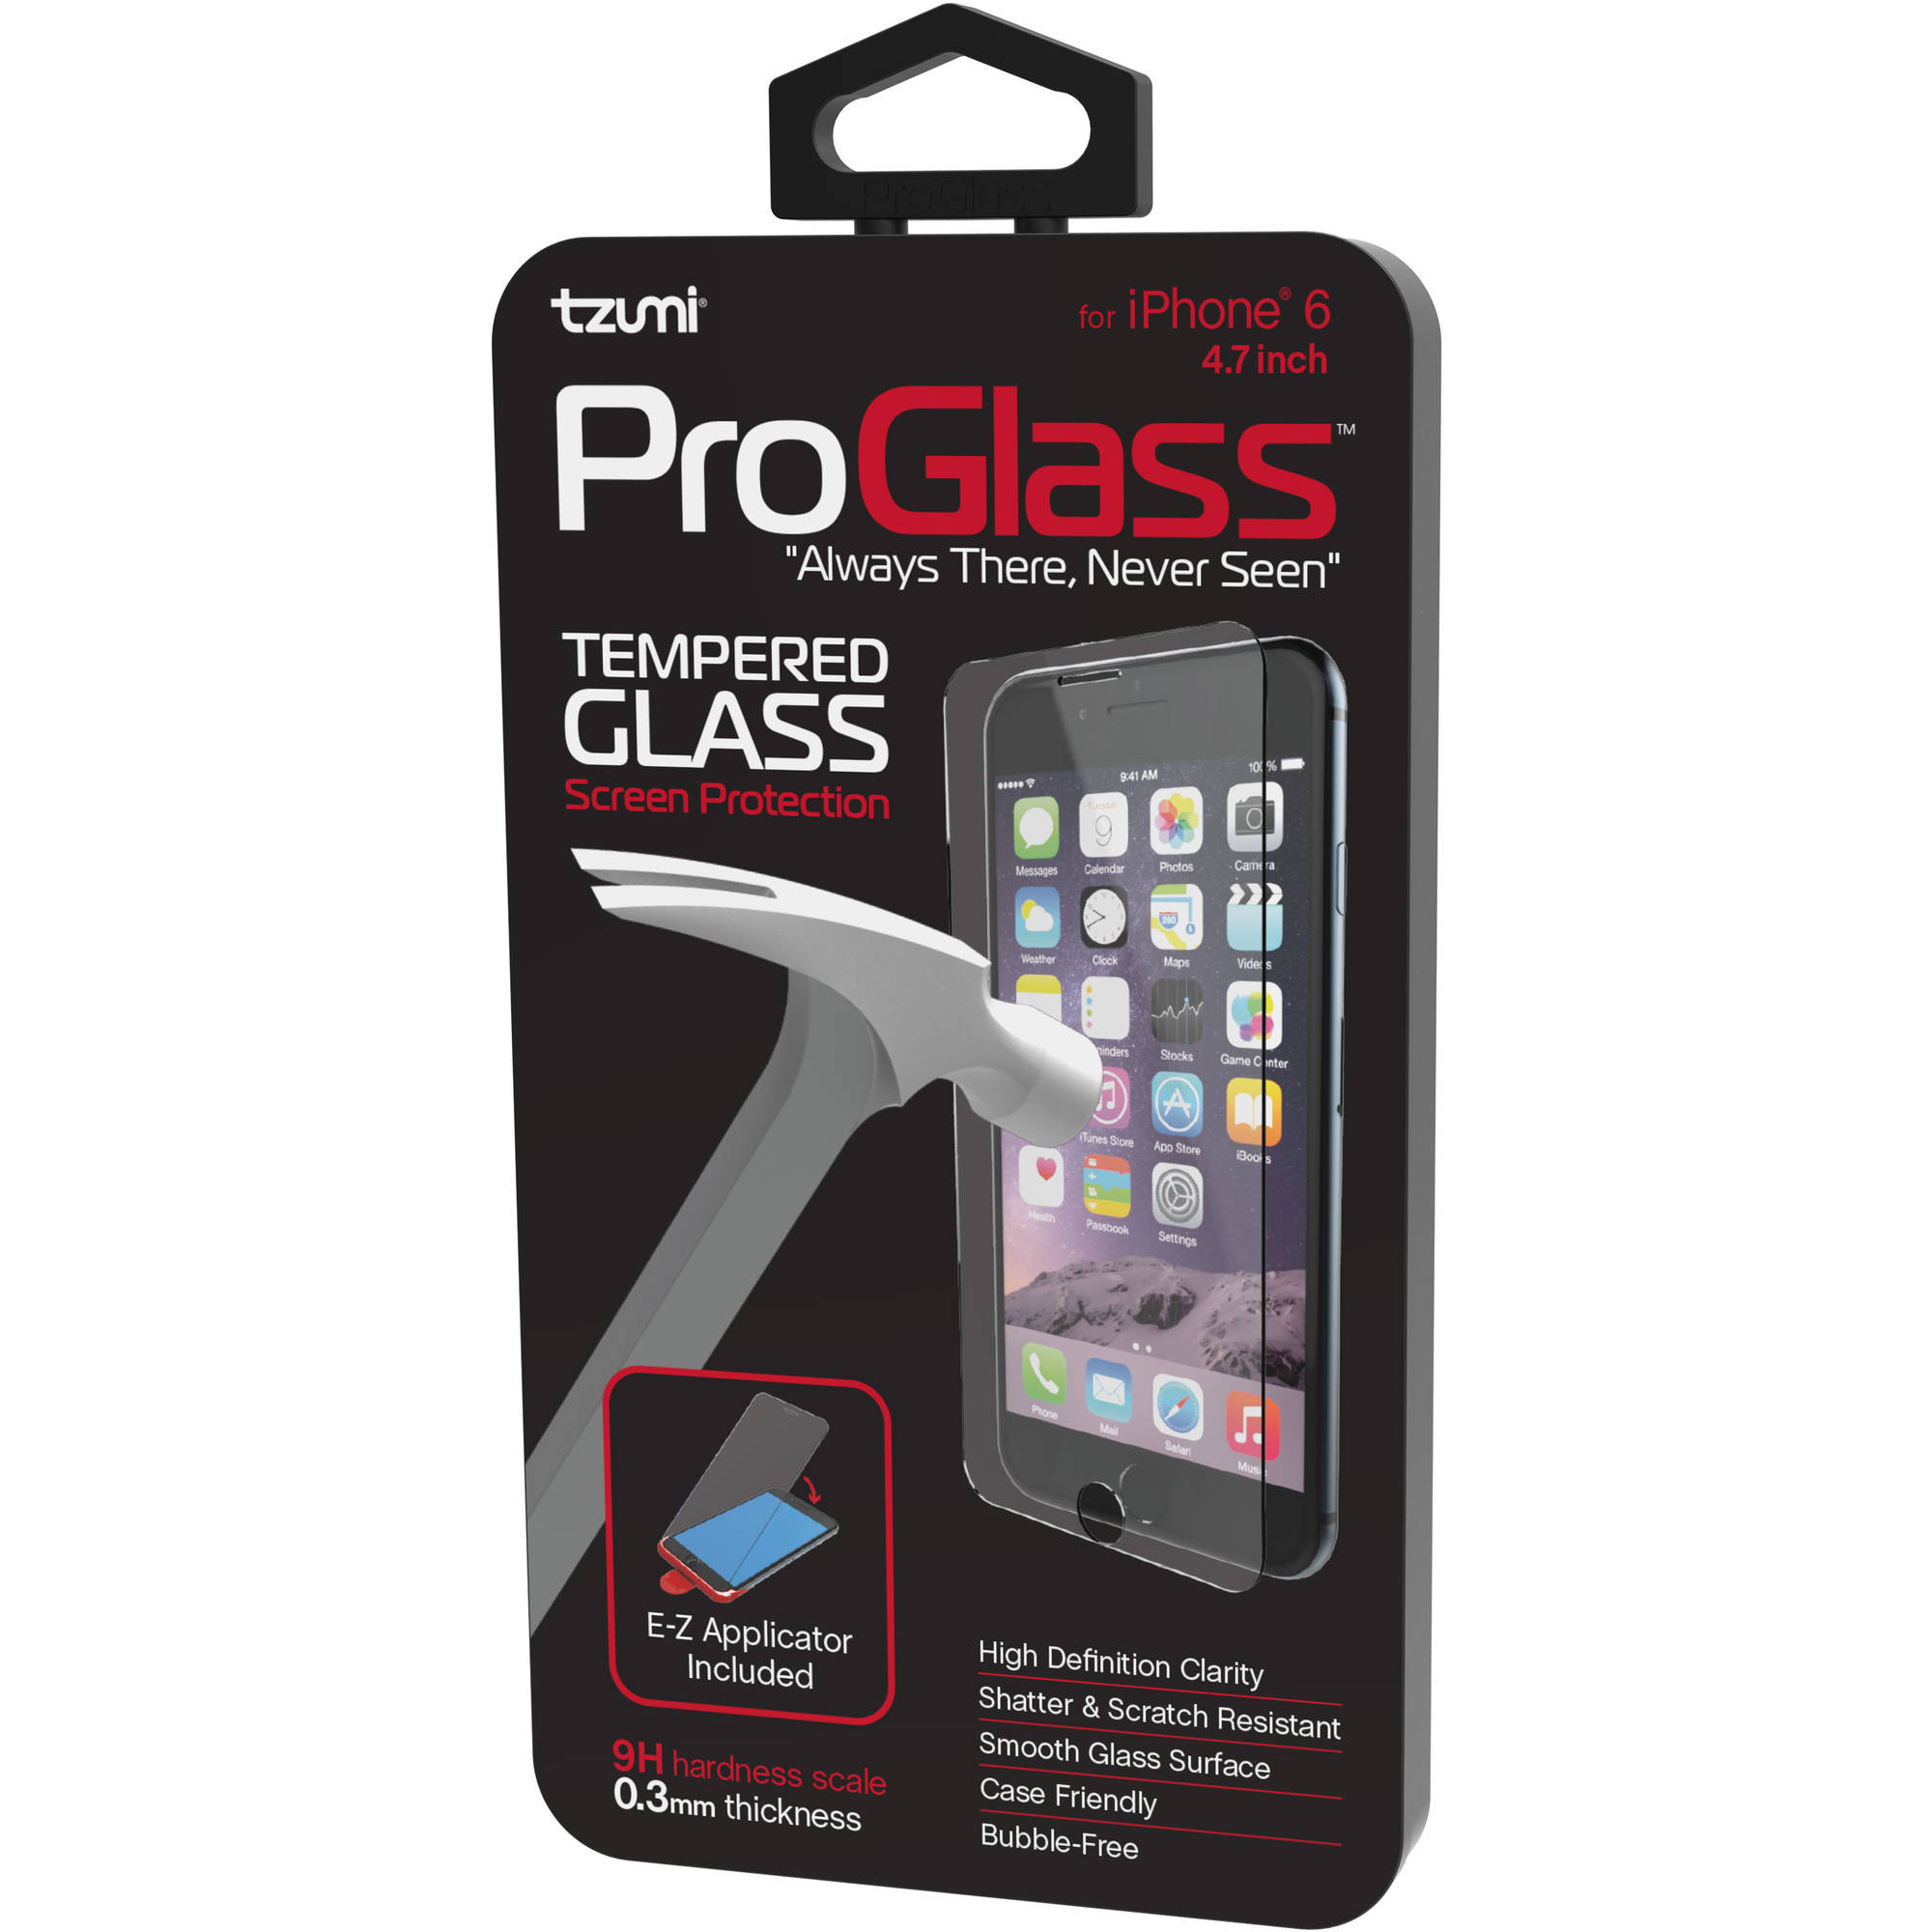 iPhone 6/6S Tzumi proglass premium hd tempered glass screen protector with easy applicator